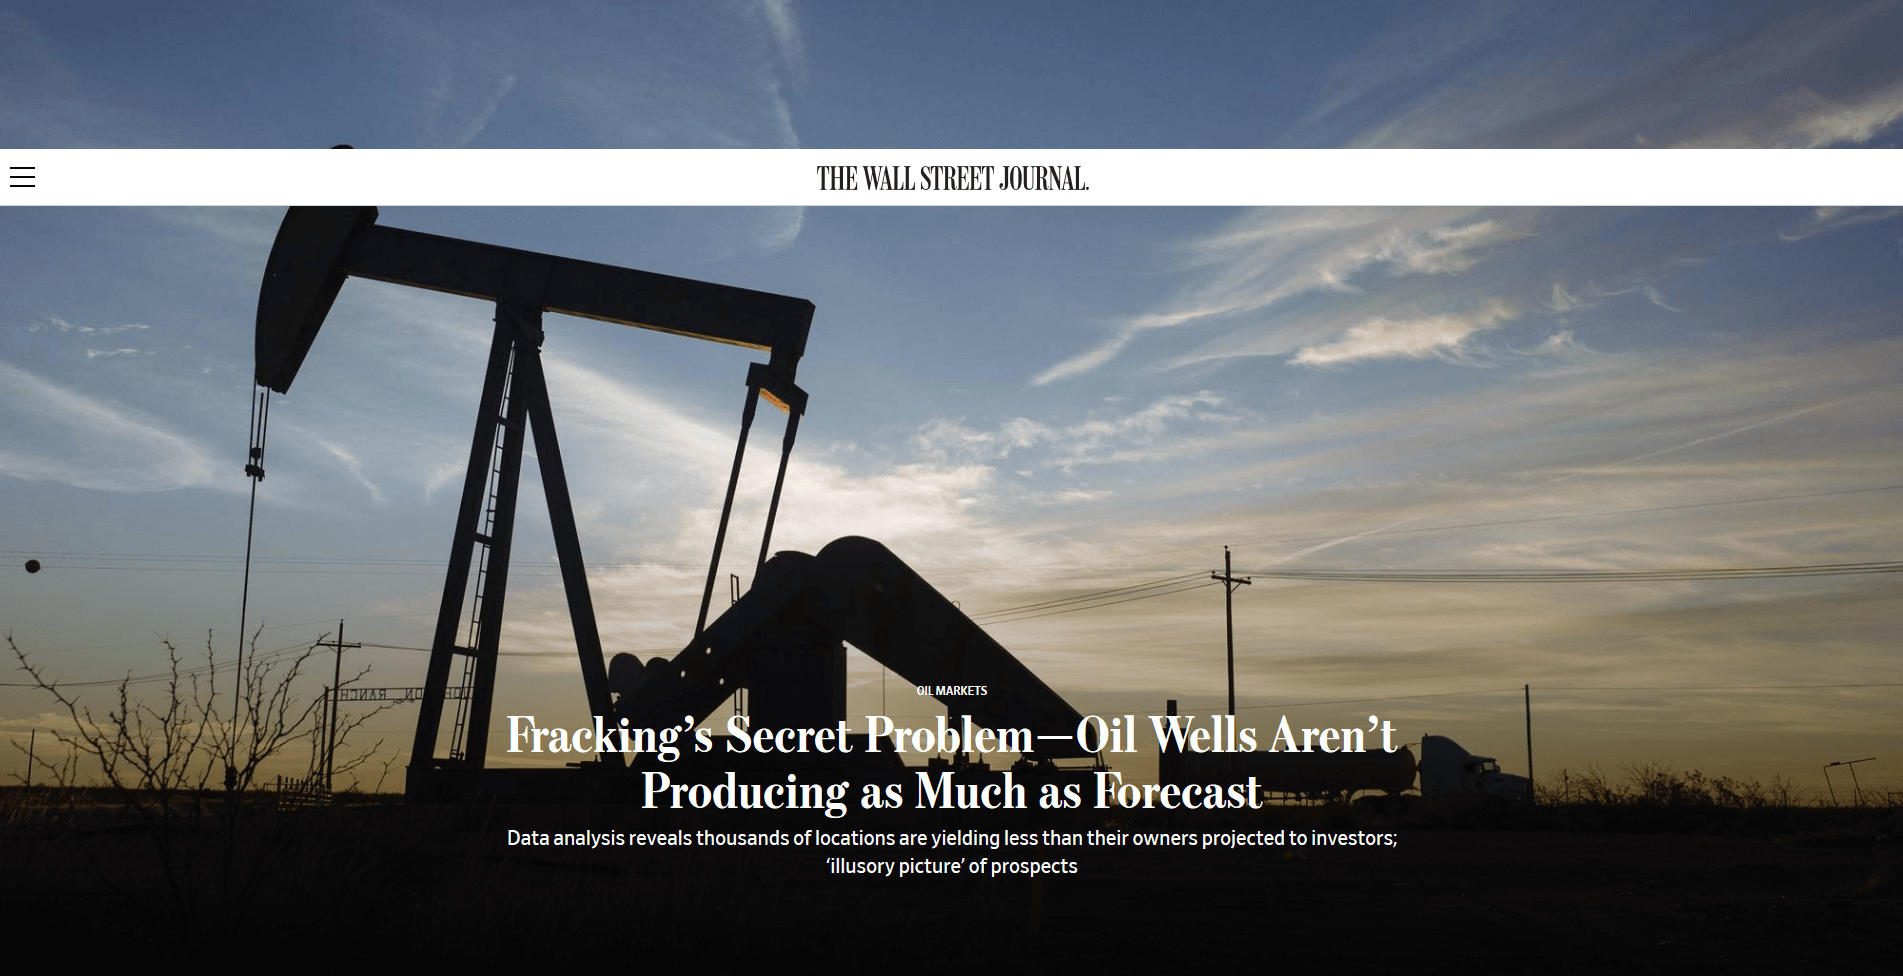 Fracking's Secret Problem—Oil Wells Aren't Producing as Much as Forecast